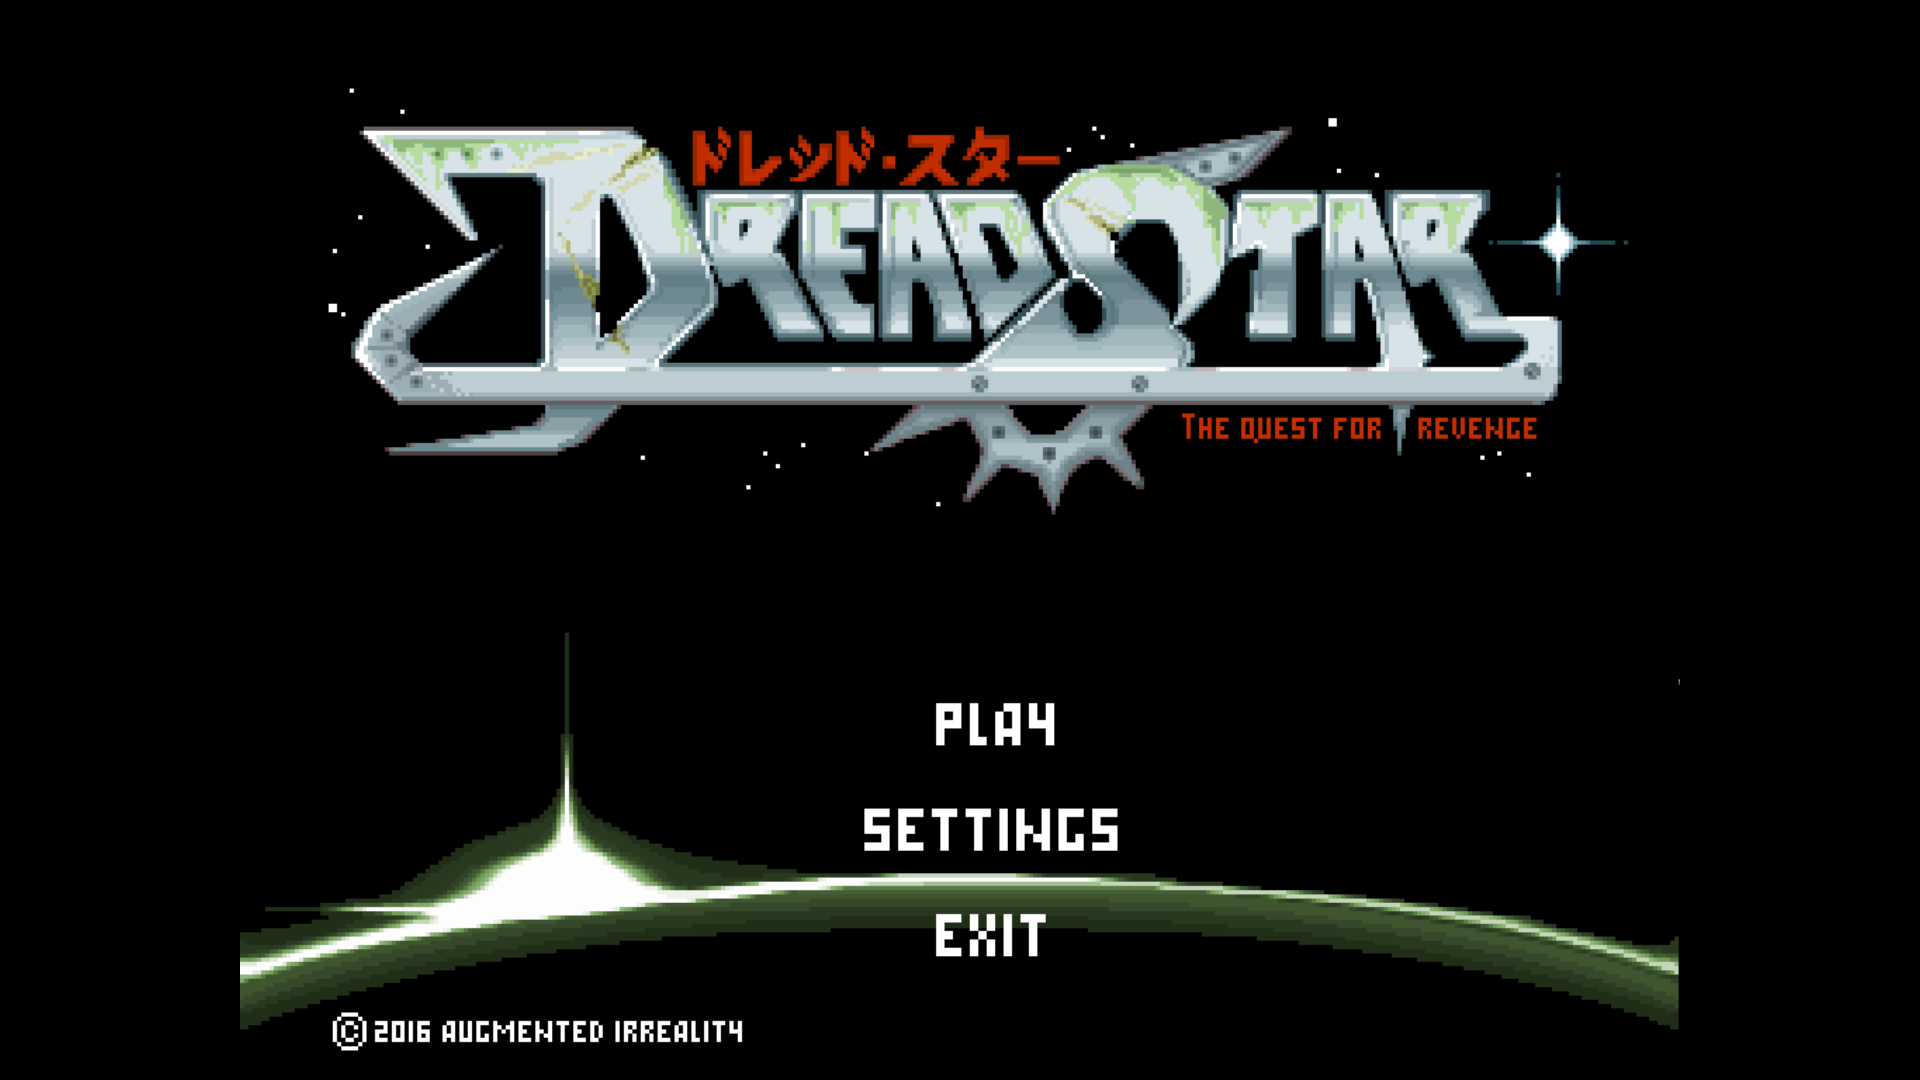 DreadStar title screen